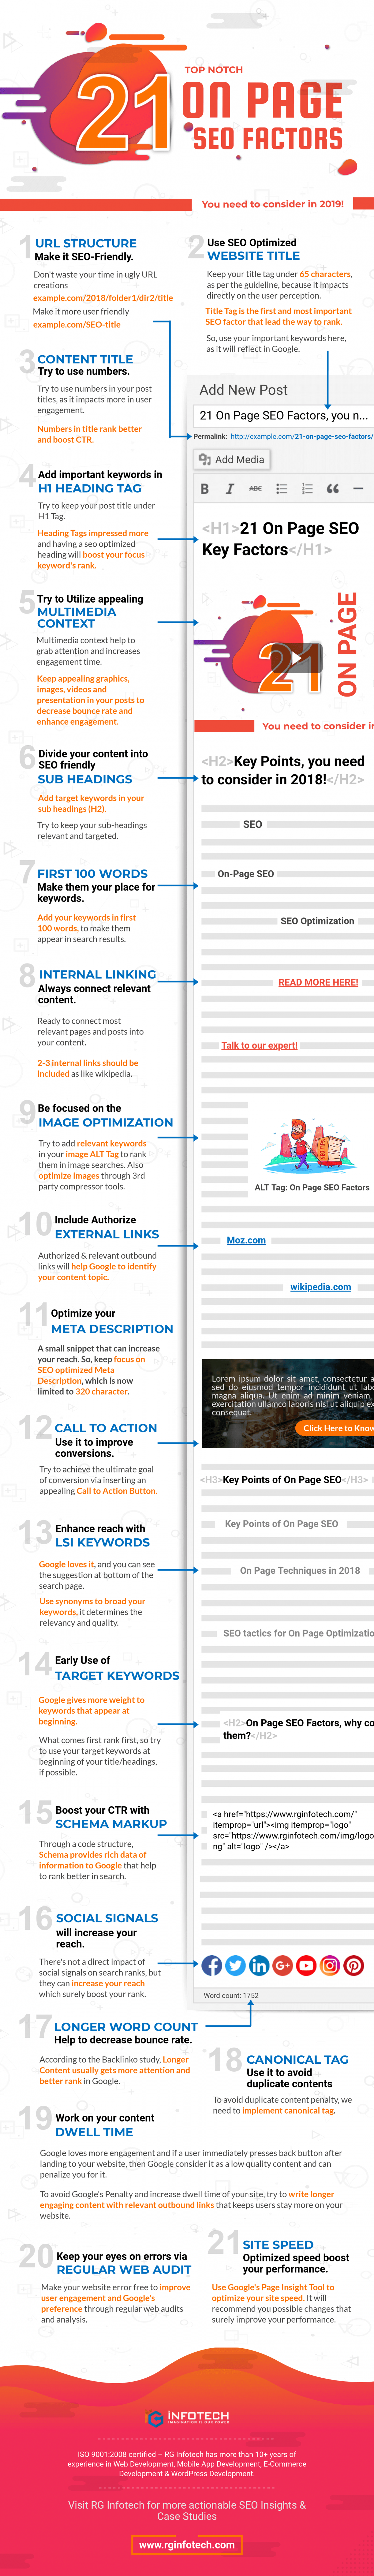 (Infographic) Top notch ON-PAGE SEO FACTORS, you should acquire in 2019! Infographic